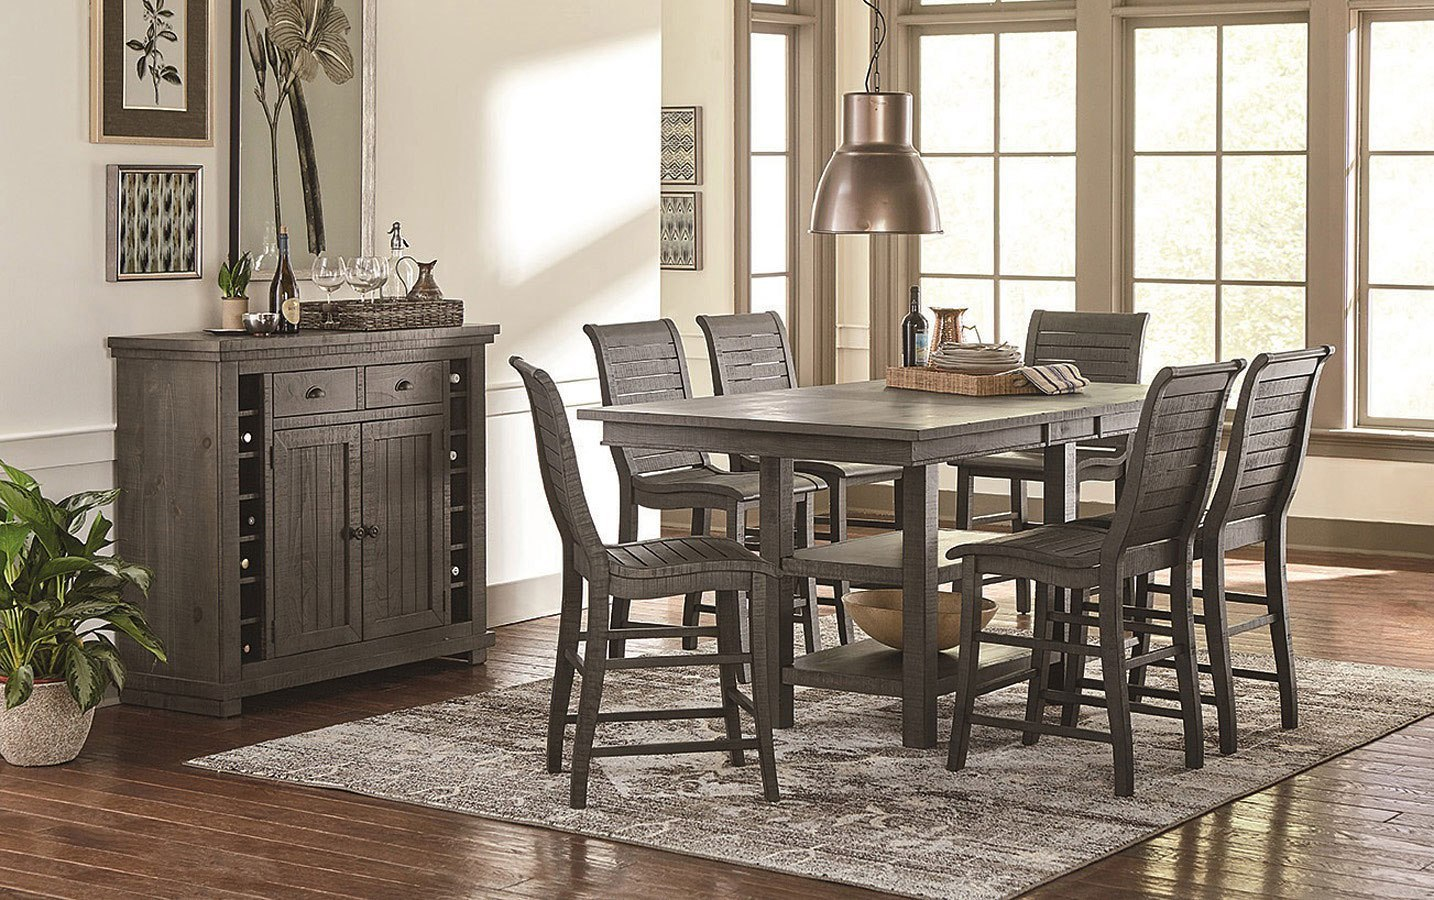 Willow Rectangular Counter Height Dining Set Distressed